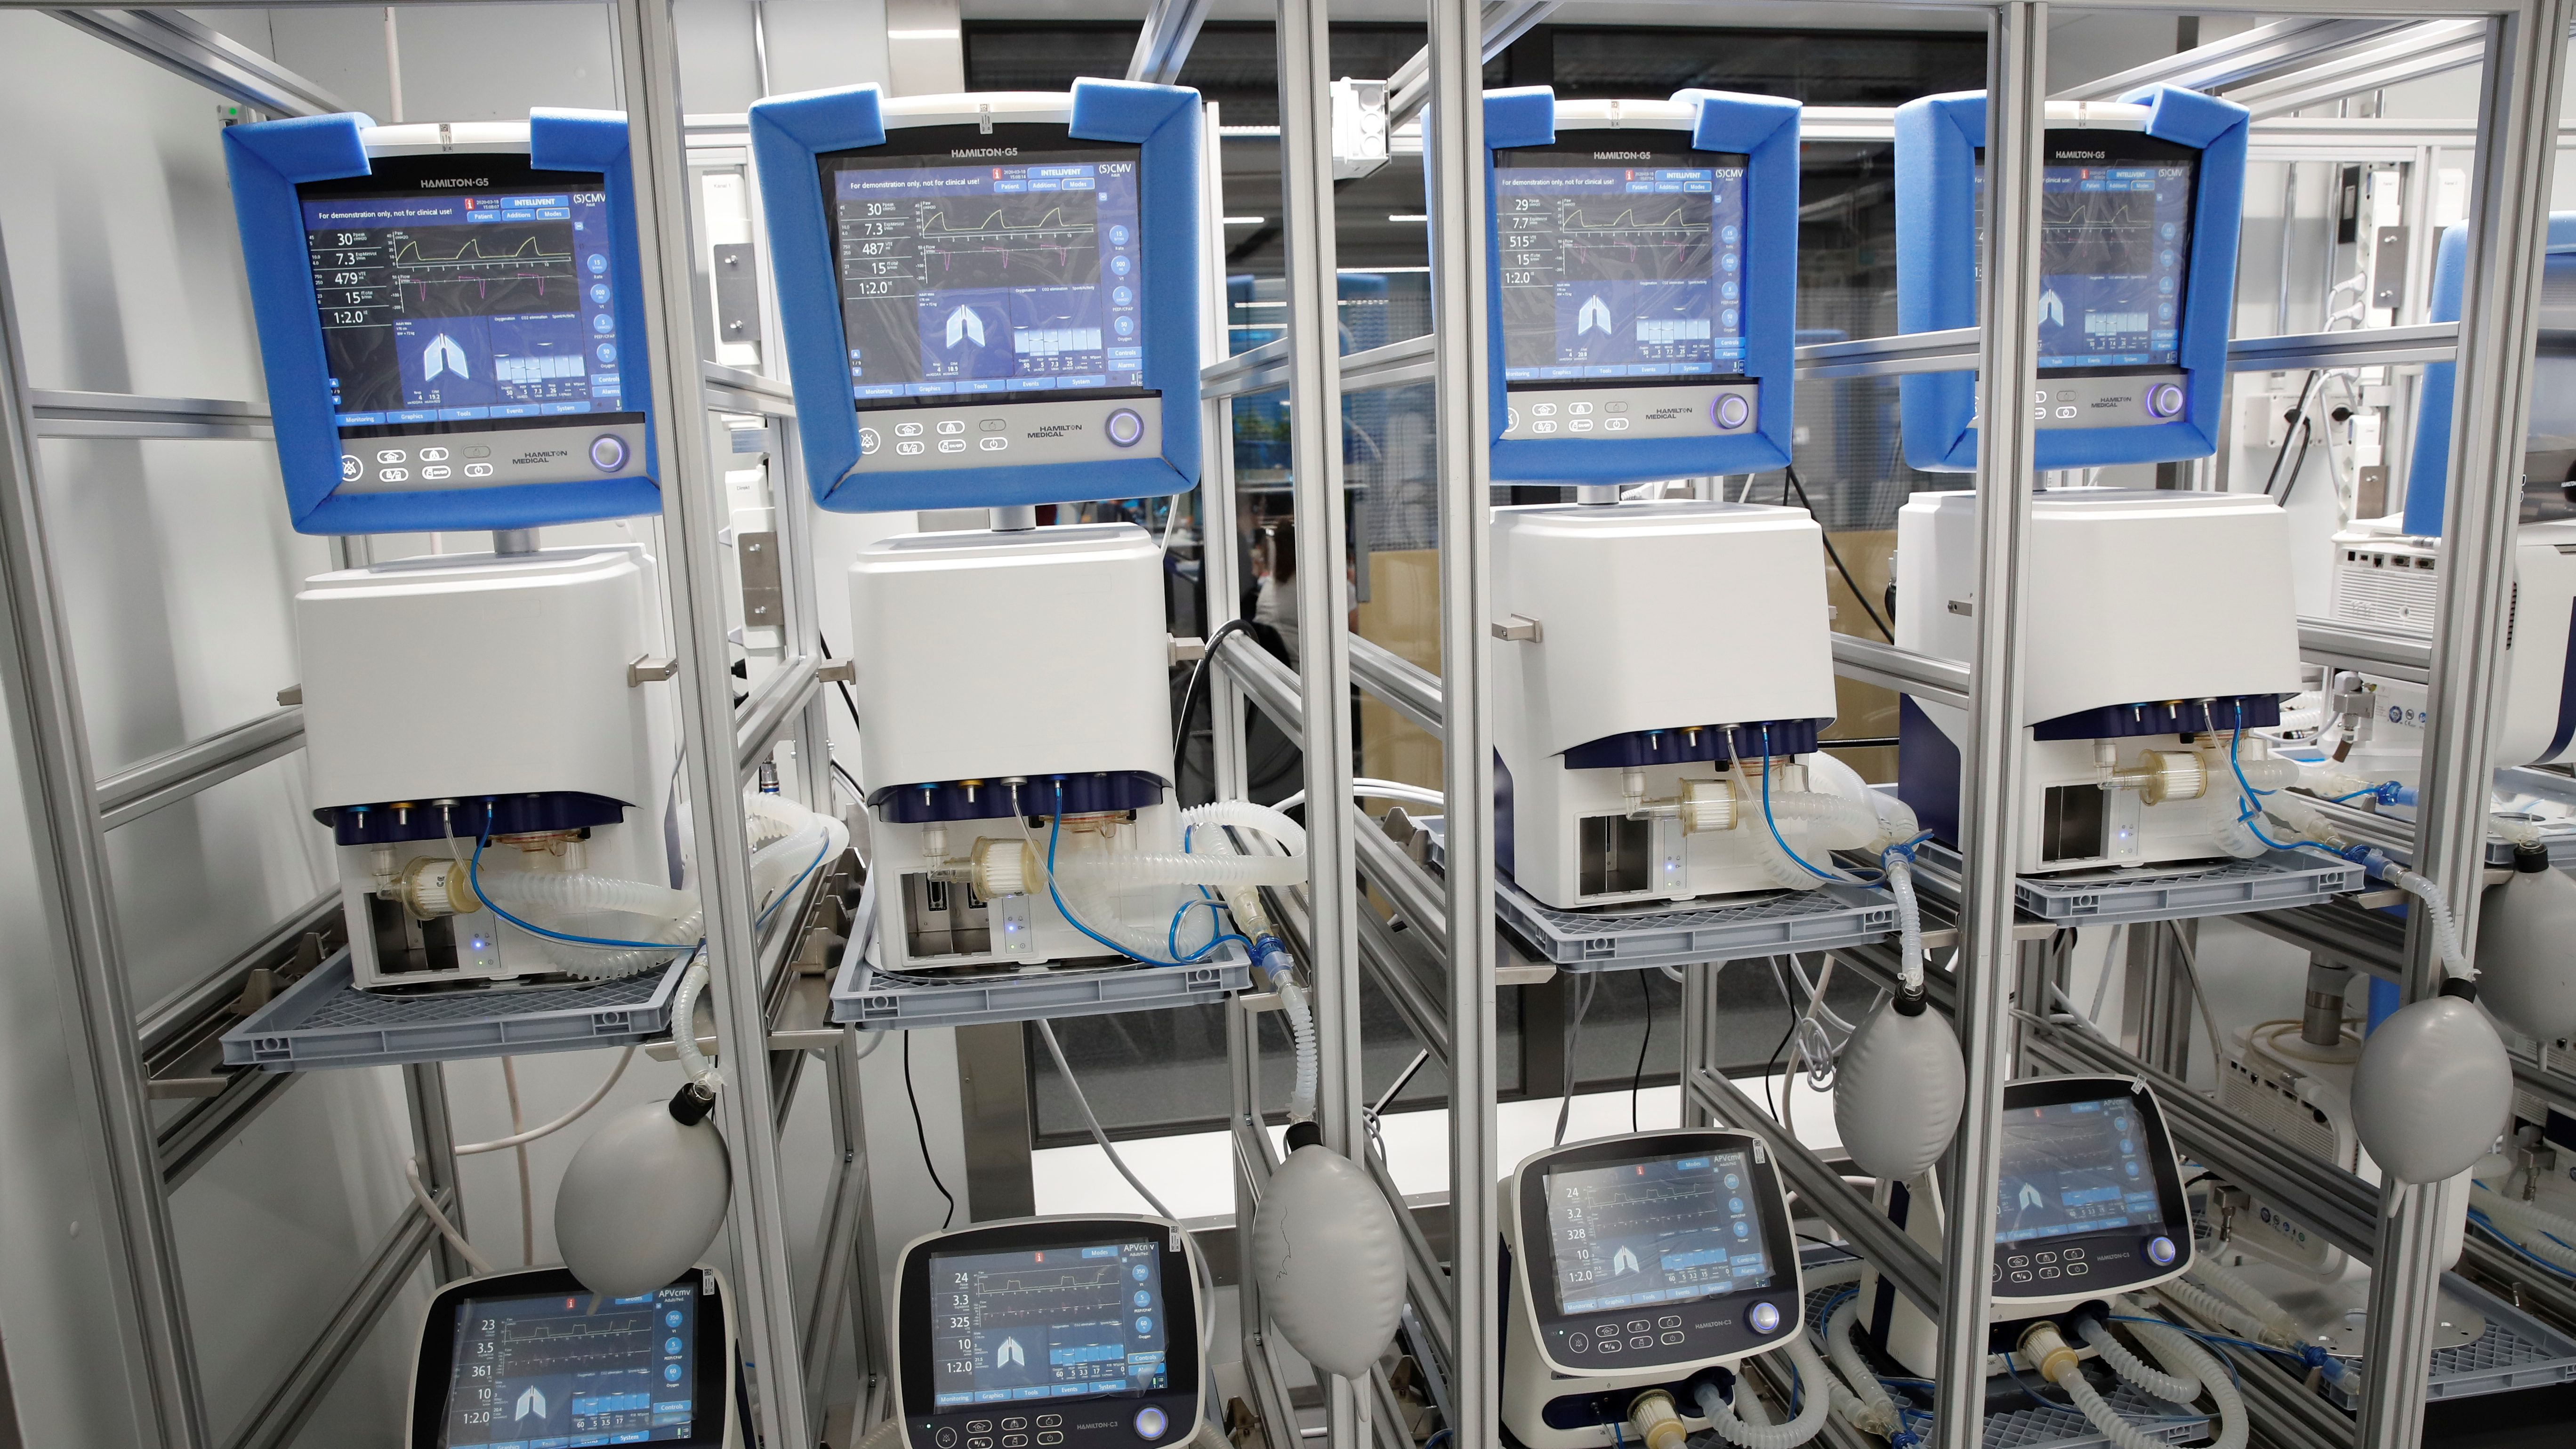 Four ventilators in a row.